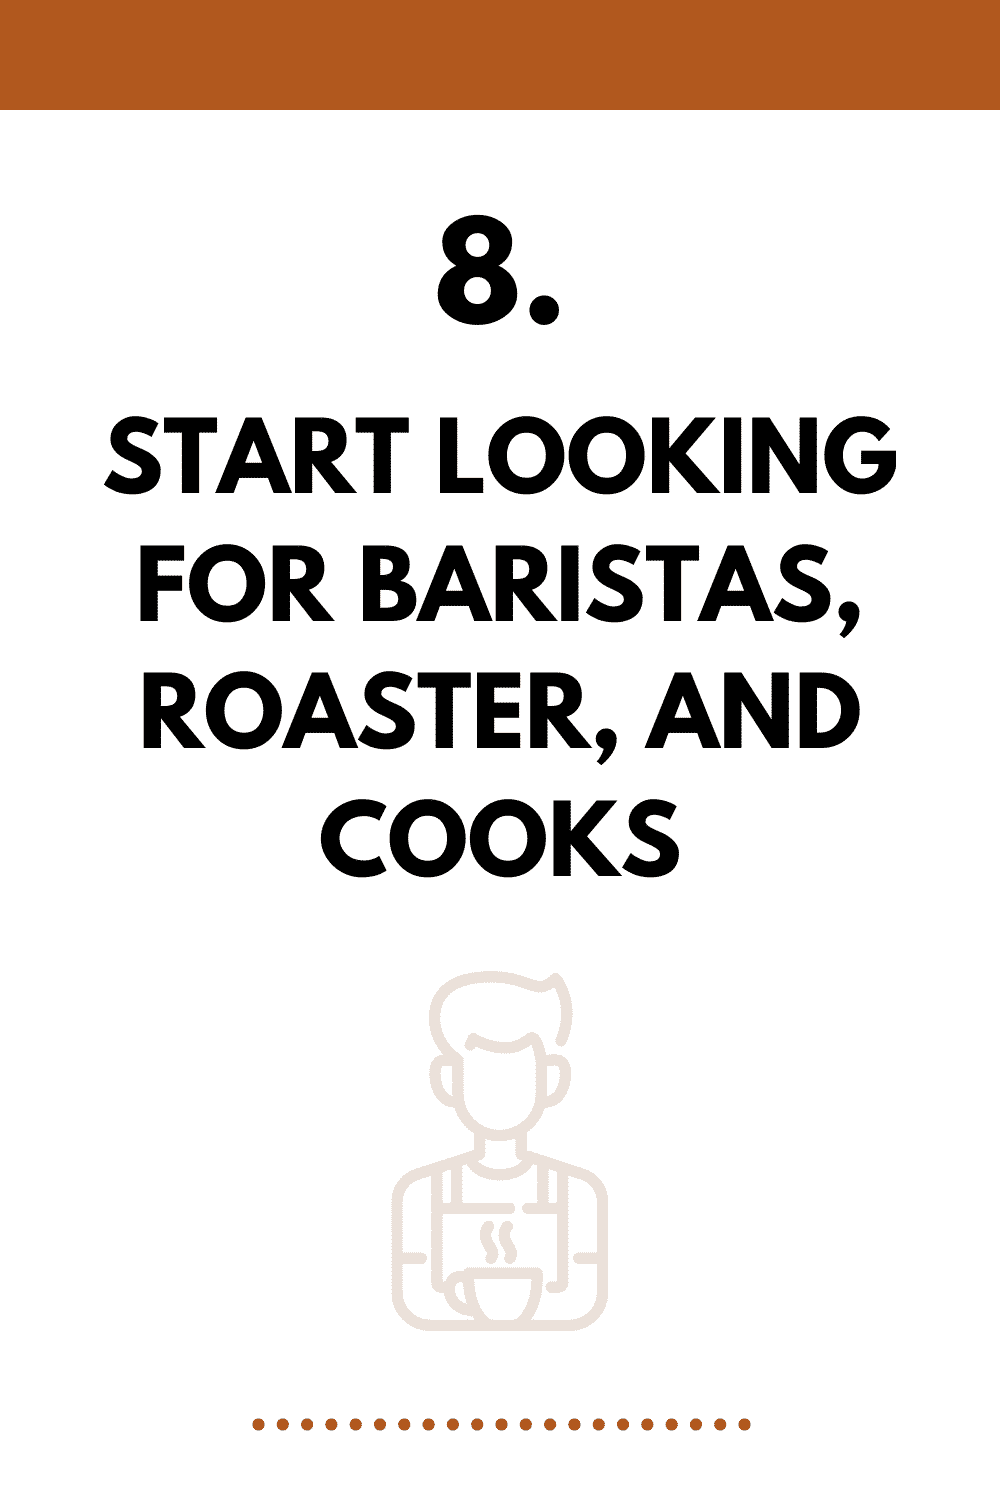 Start looking for baristas, roaster, and cooks